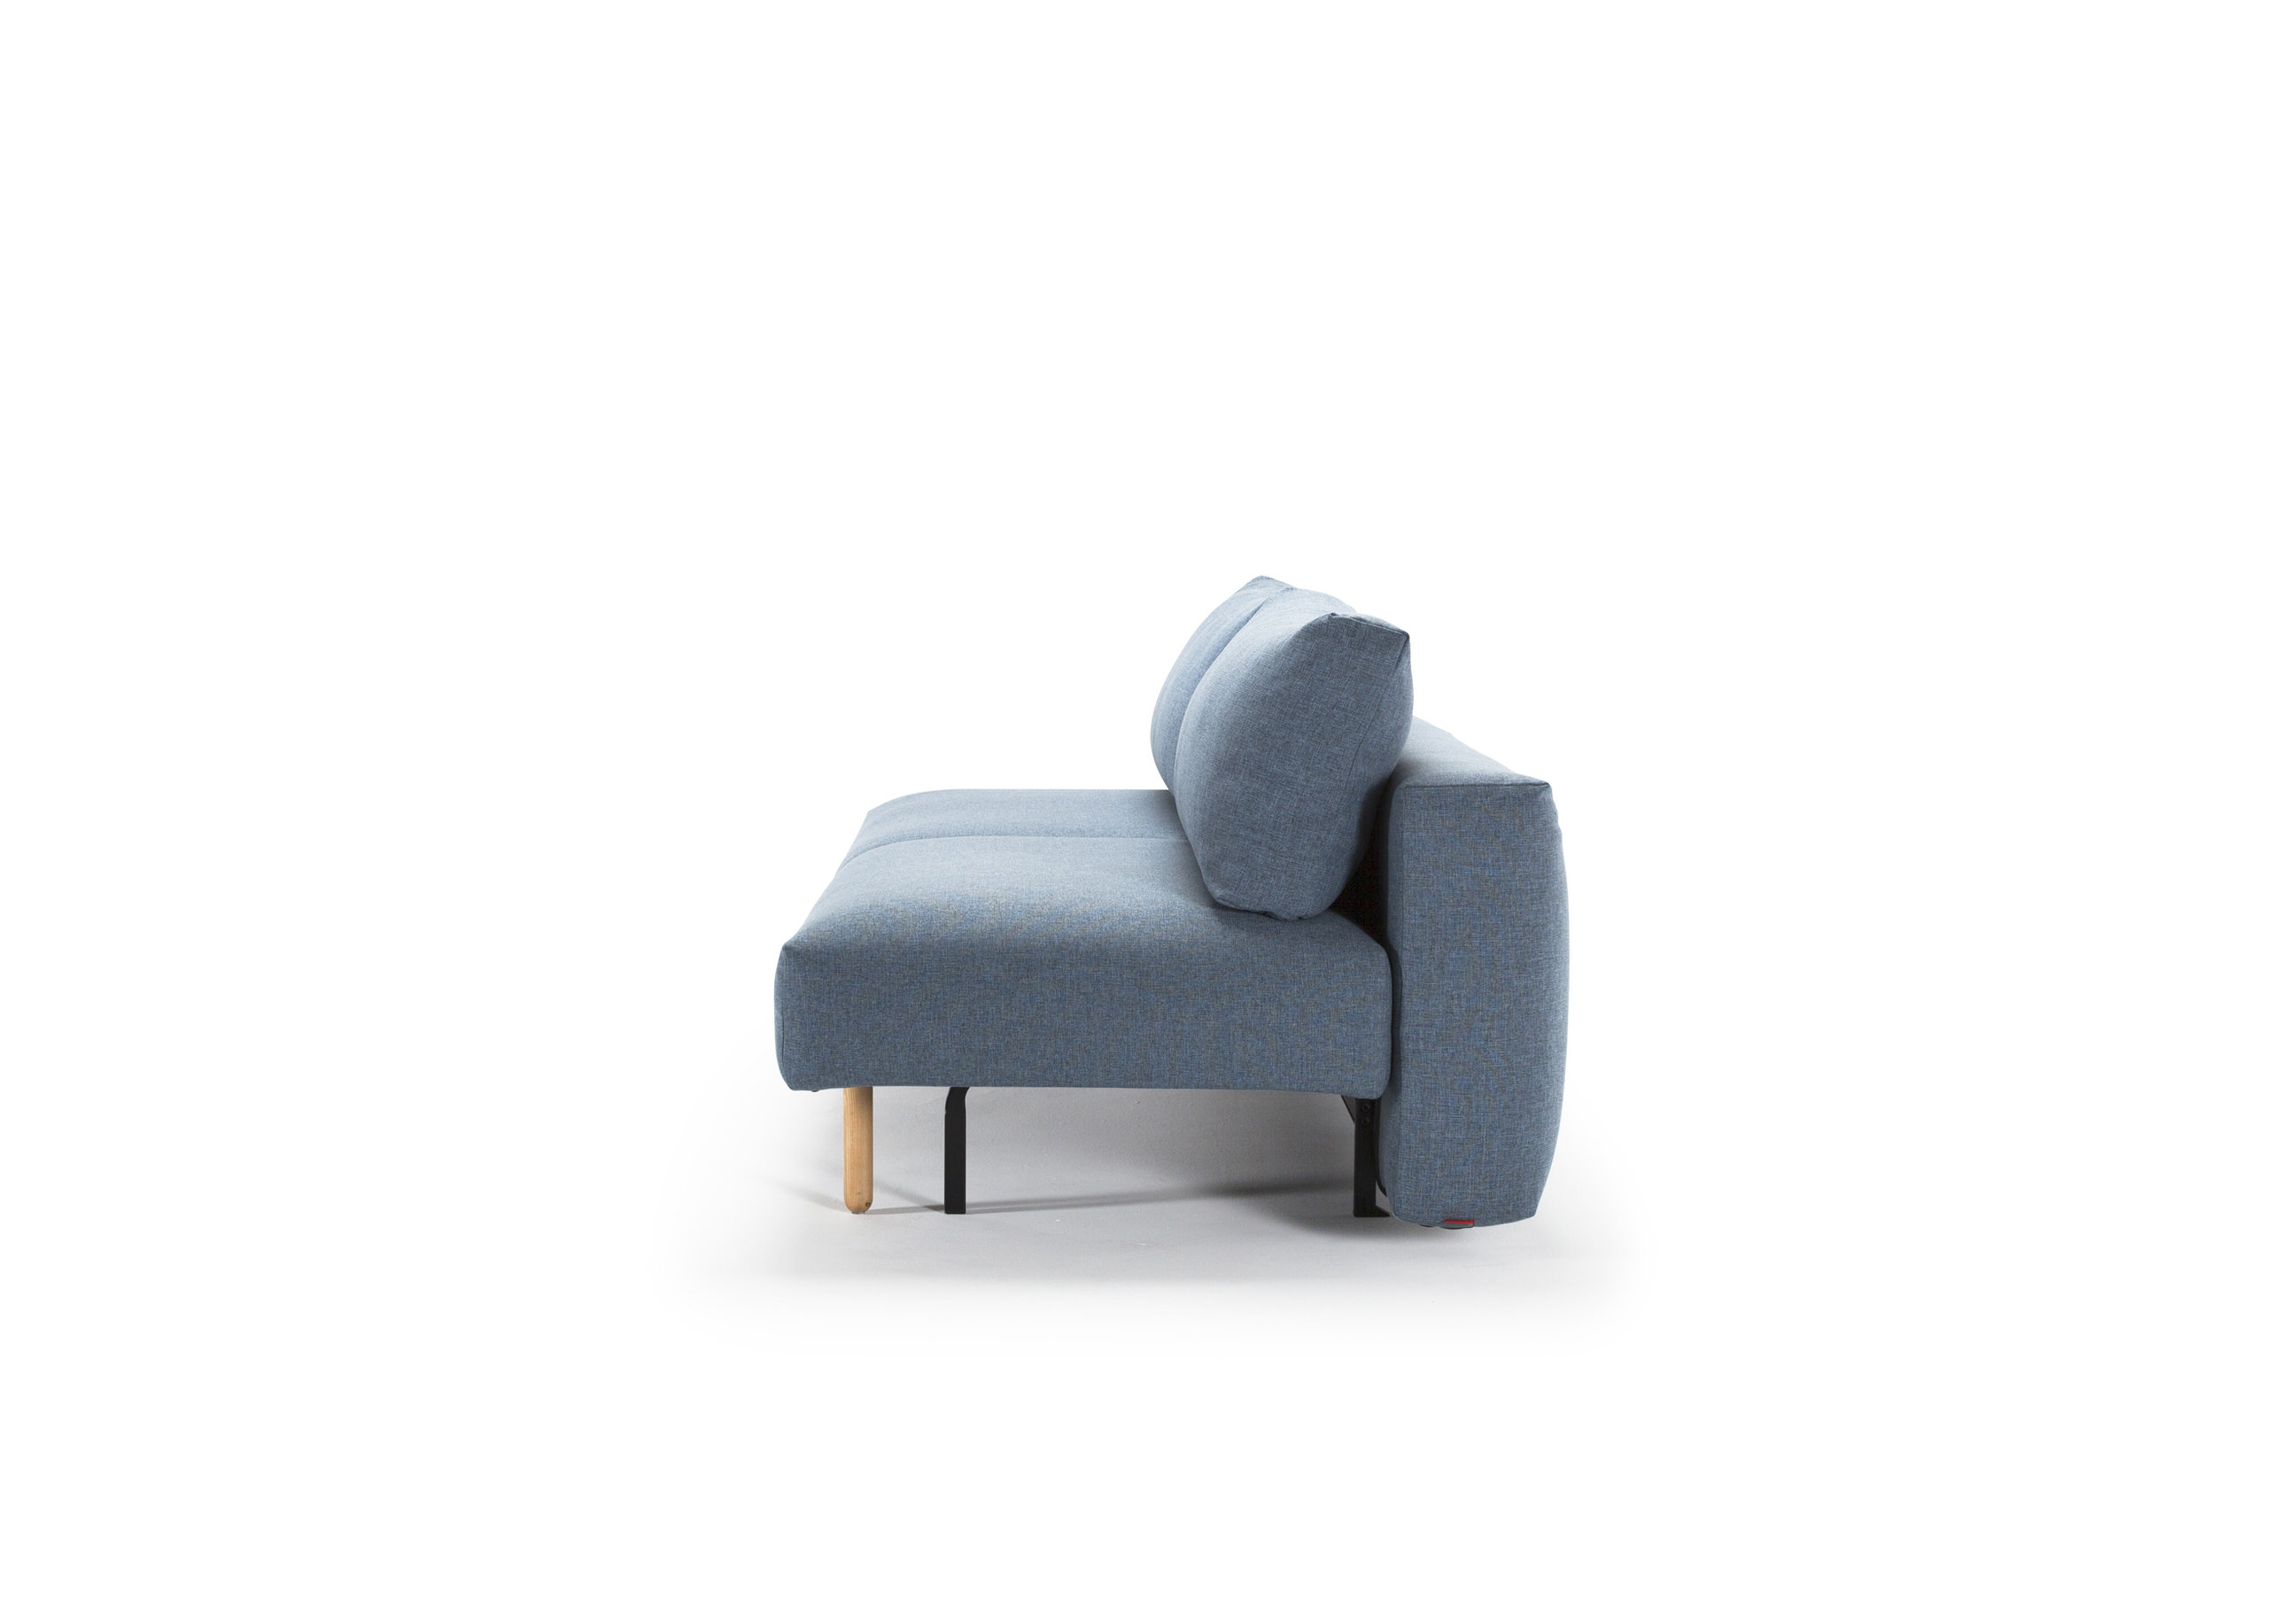 frode sofa mixed dance light blue by innovation - frode sofa mixed dance light blue by innovation (innovation usa)